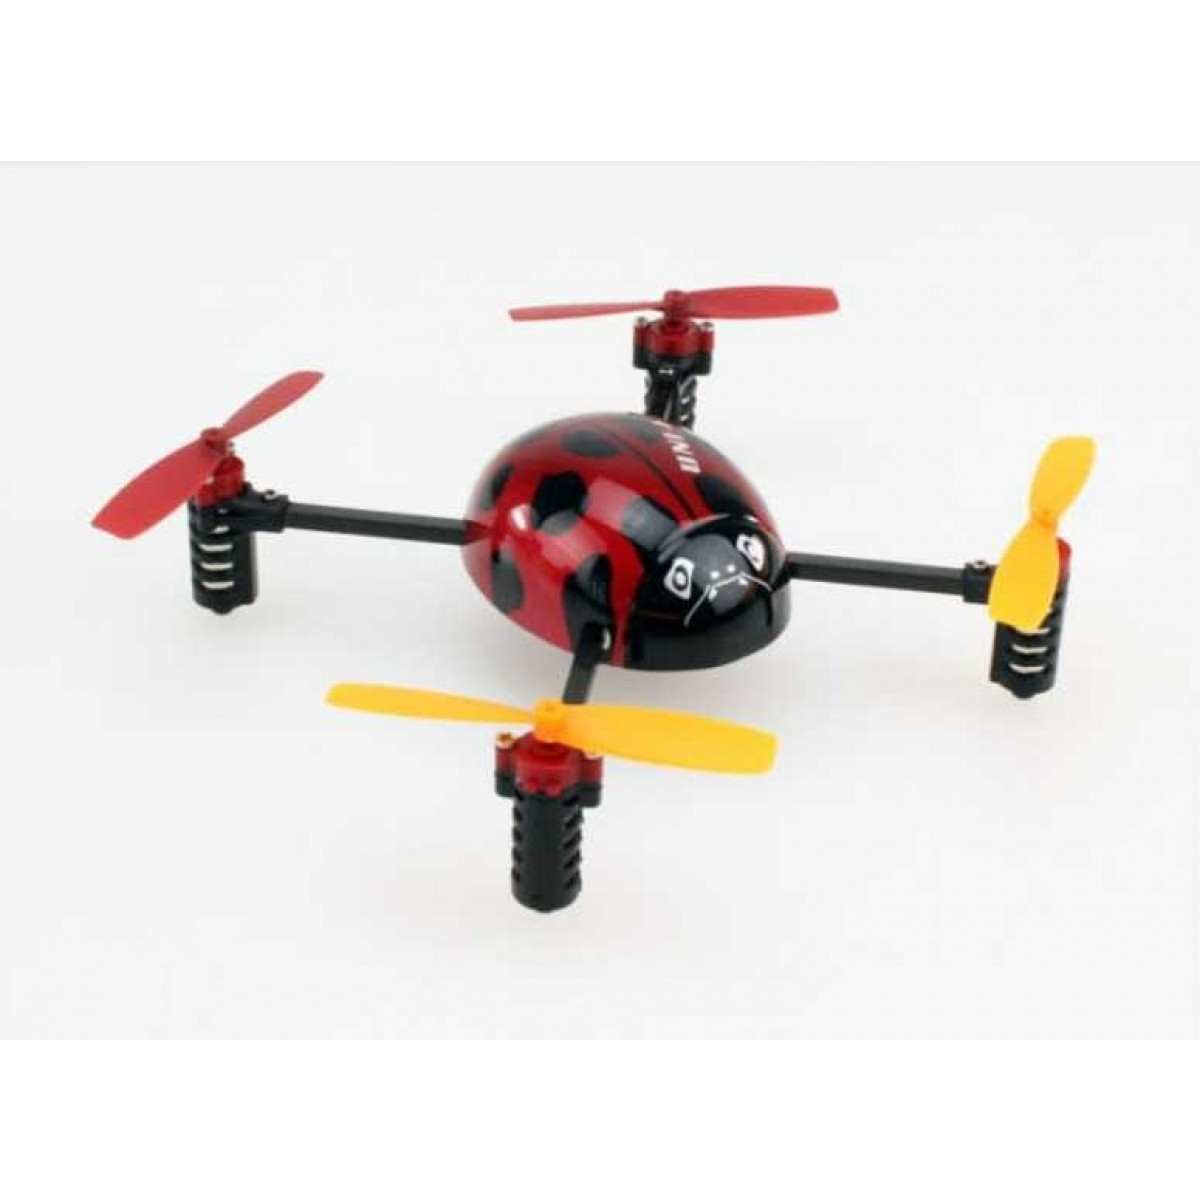 remote control airplanes for sale cheap with 2 4ghz Four Axis Acrobatics Remote Control Rc Ufo Helicopter 4 Channel on 18x18x6cm Mini Four Axis Remote Control Rc Vehicle besides 46cm Remote Control Rc Helicopter With Gyro Stability L131 1 additionally P 61 Black Widow Rc as well Fire Truck Toys further Remote Control Cars Shop Buy Rc Cars Radio Control.